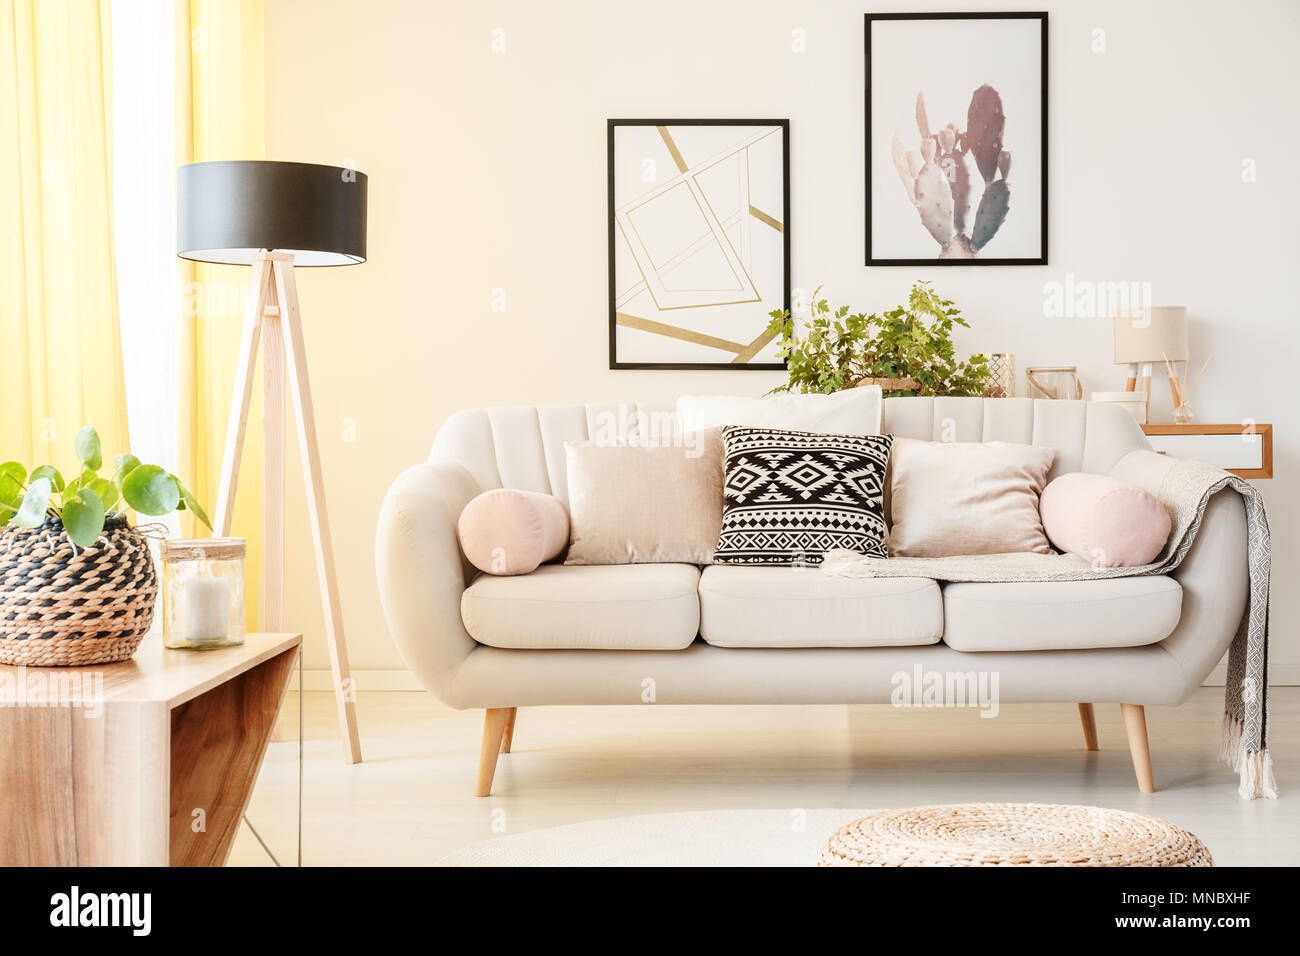 Patterned pillow on a beige couch next to lamp and plant on a ...